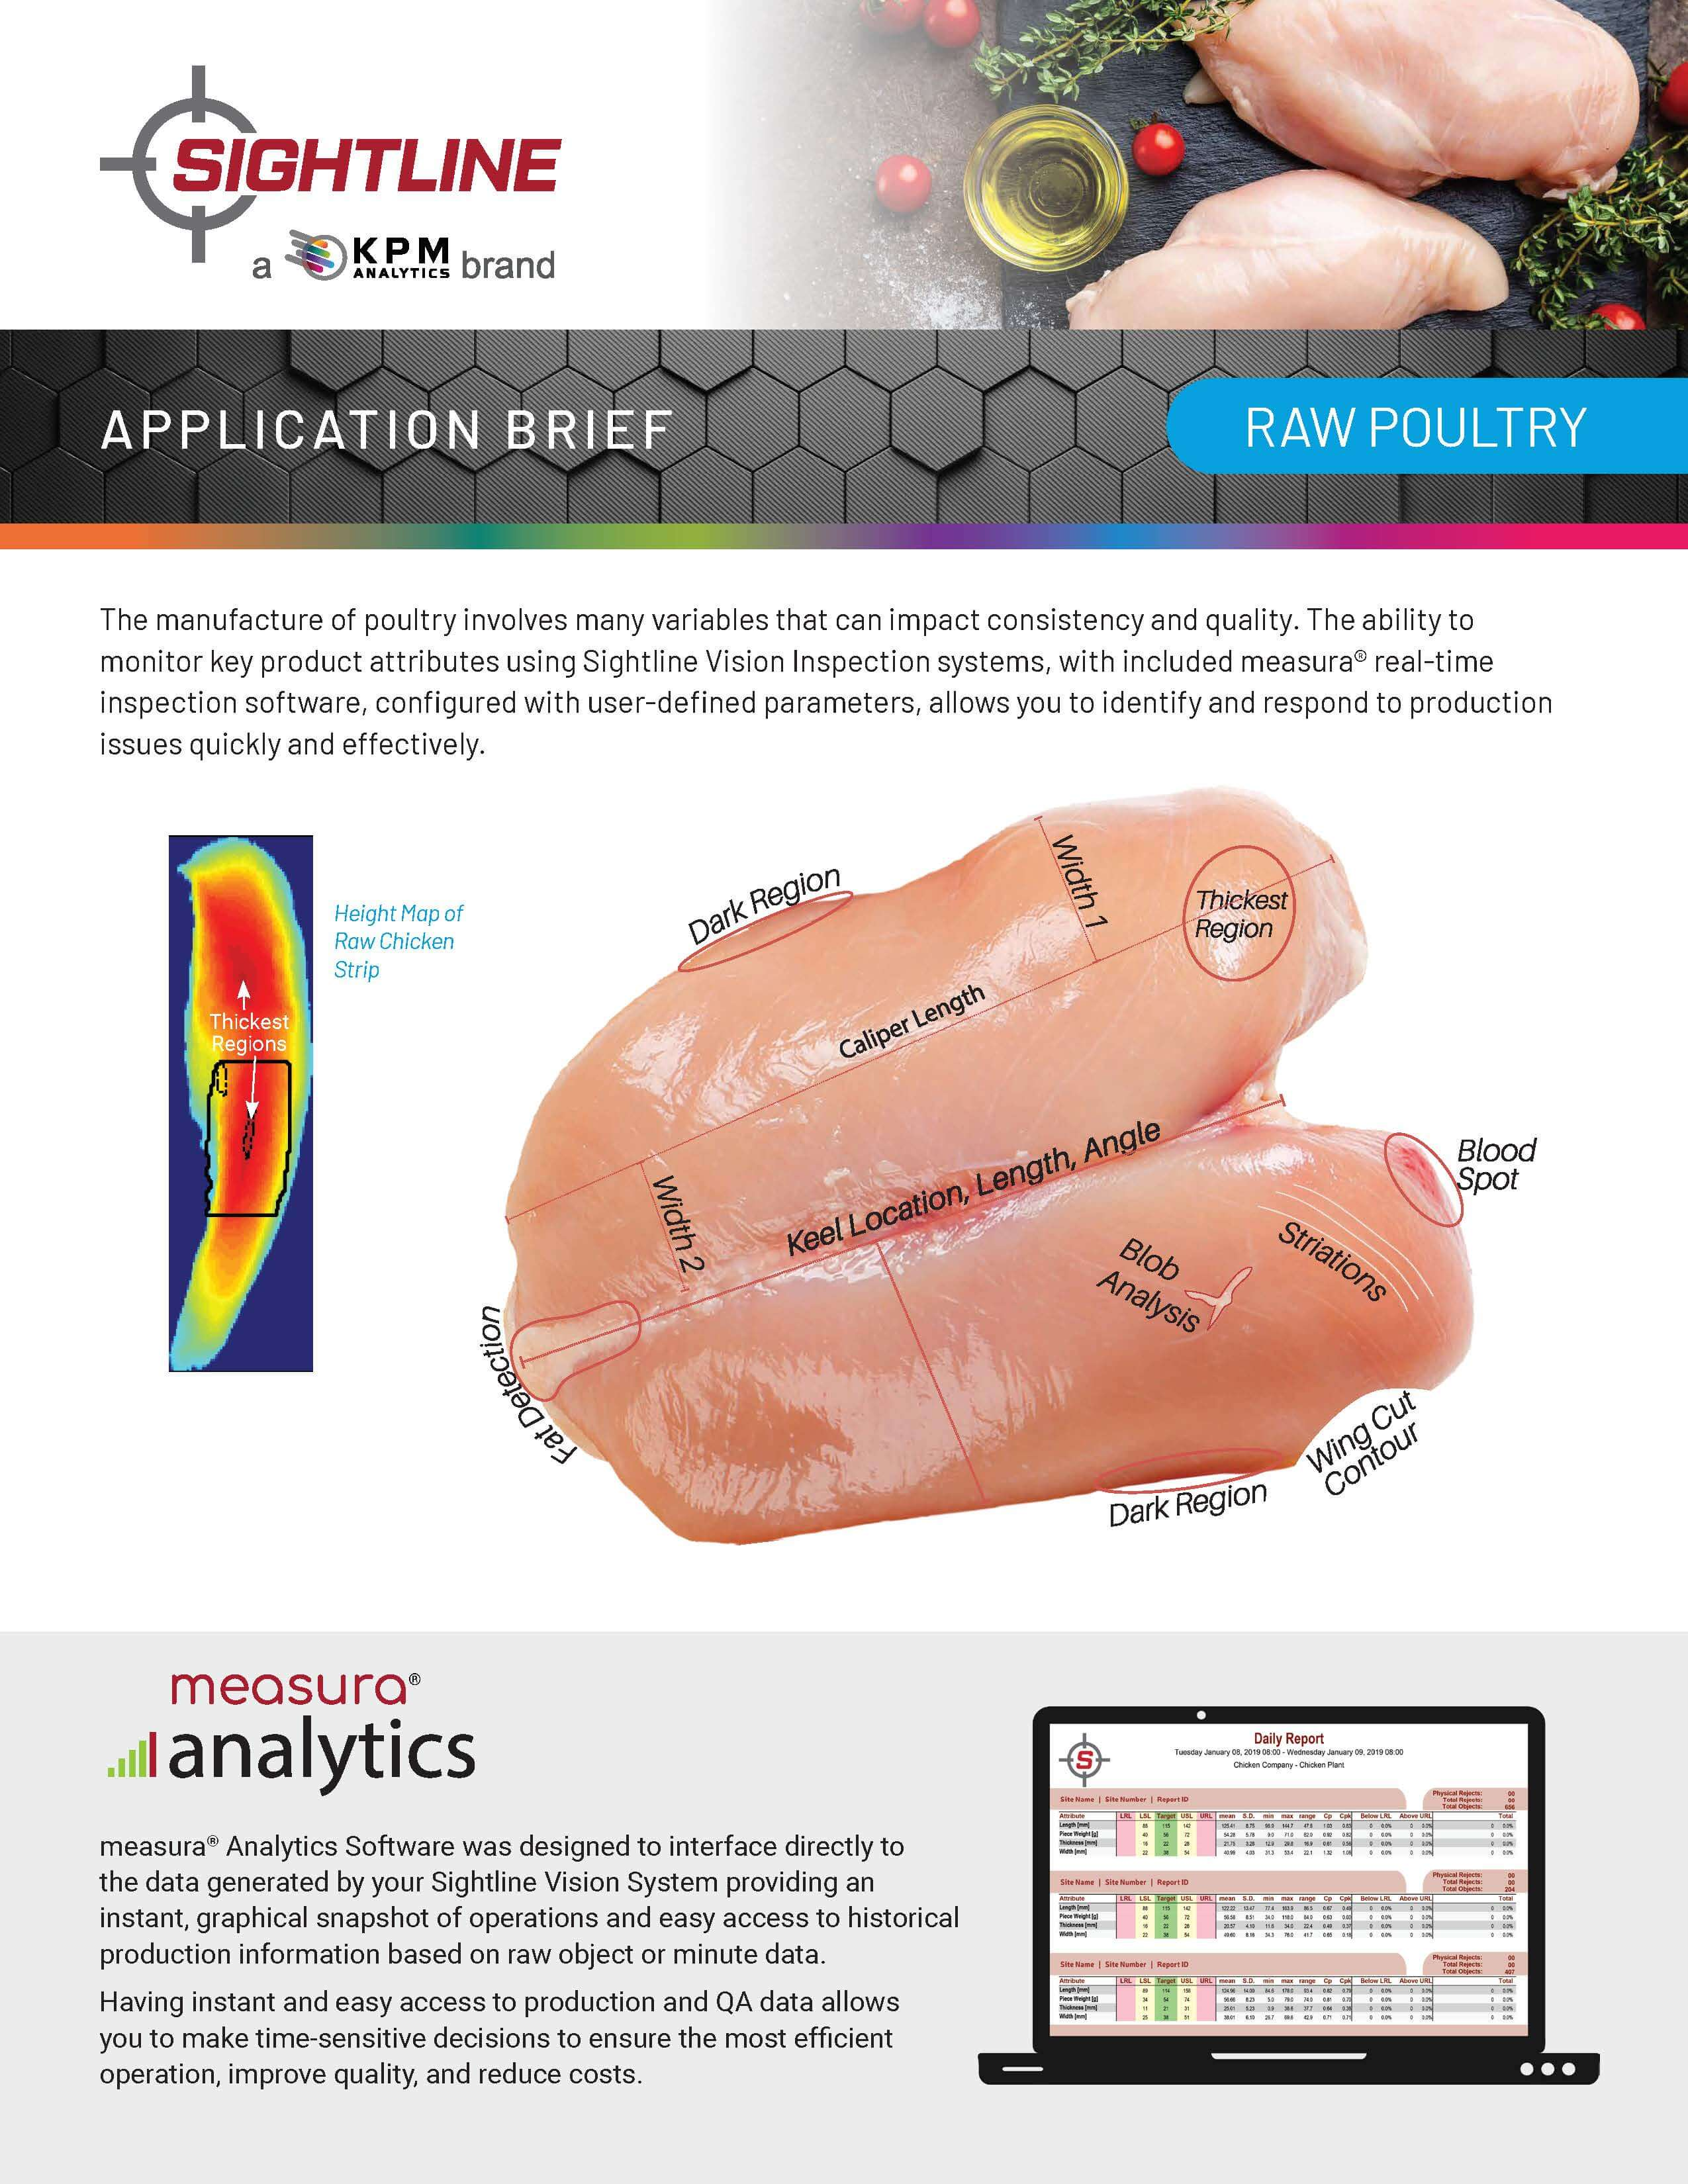 Vision Inspection of Raw Poultry